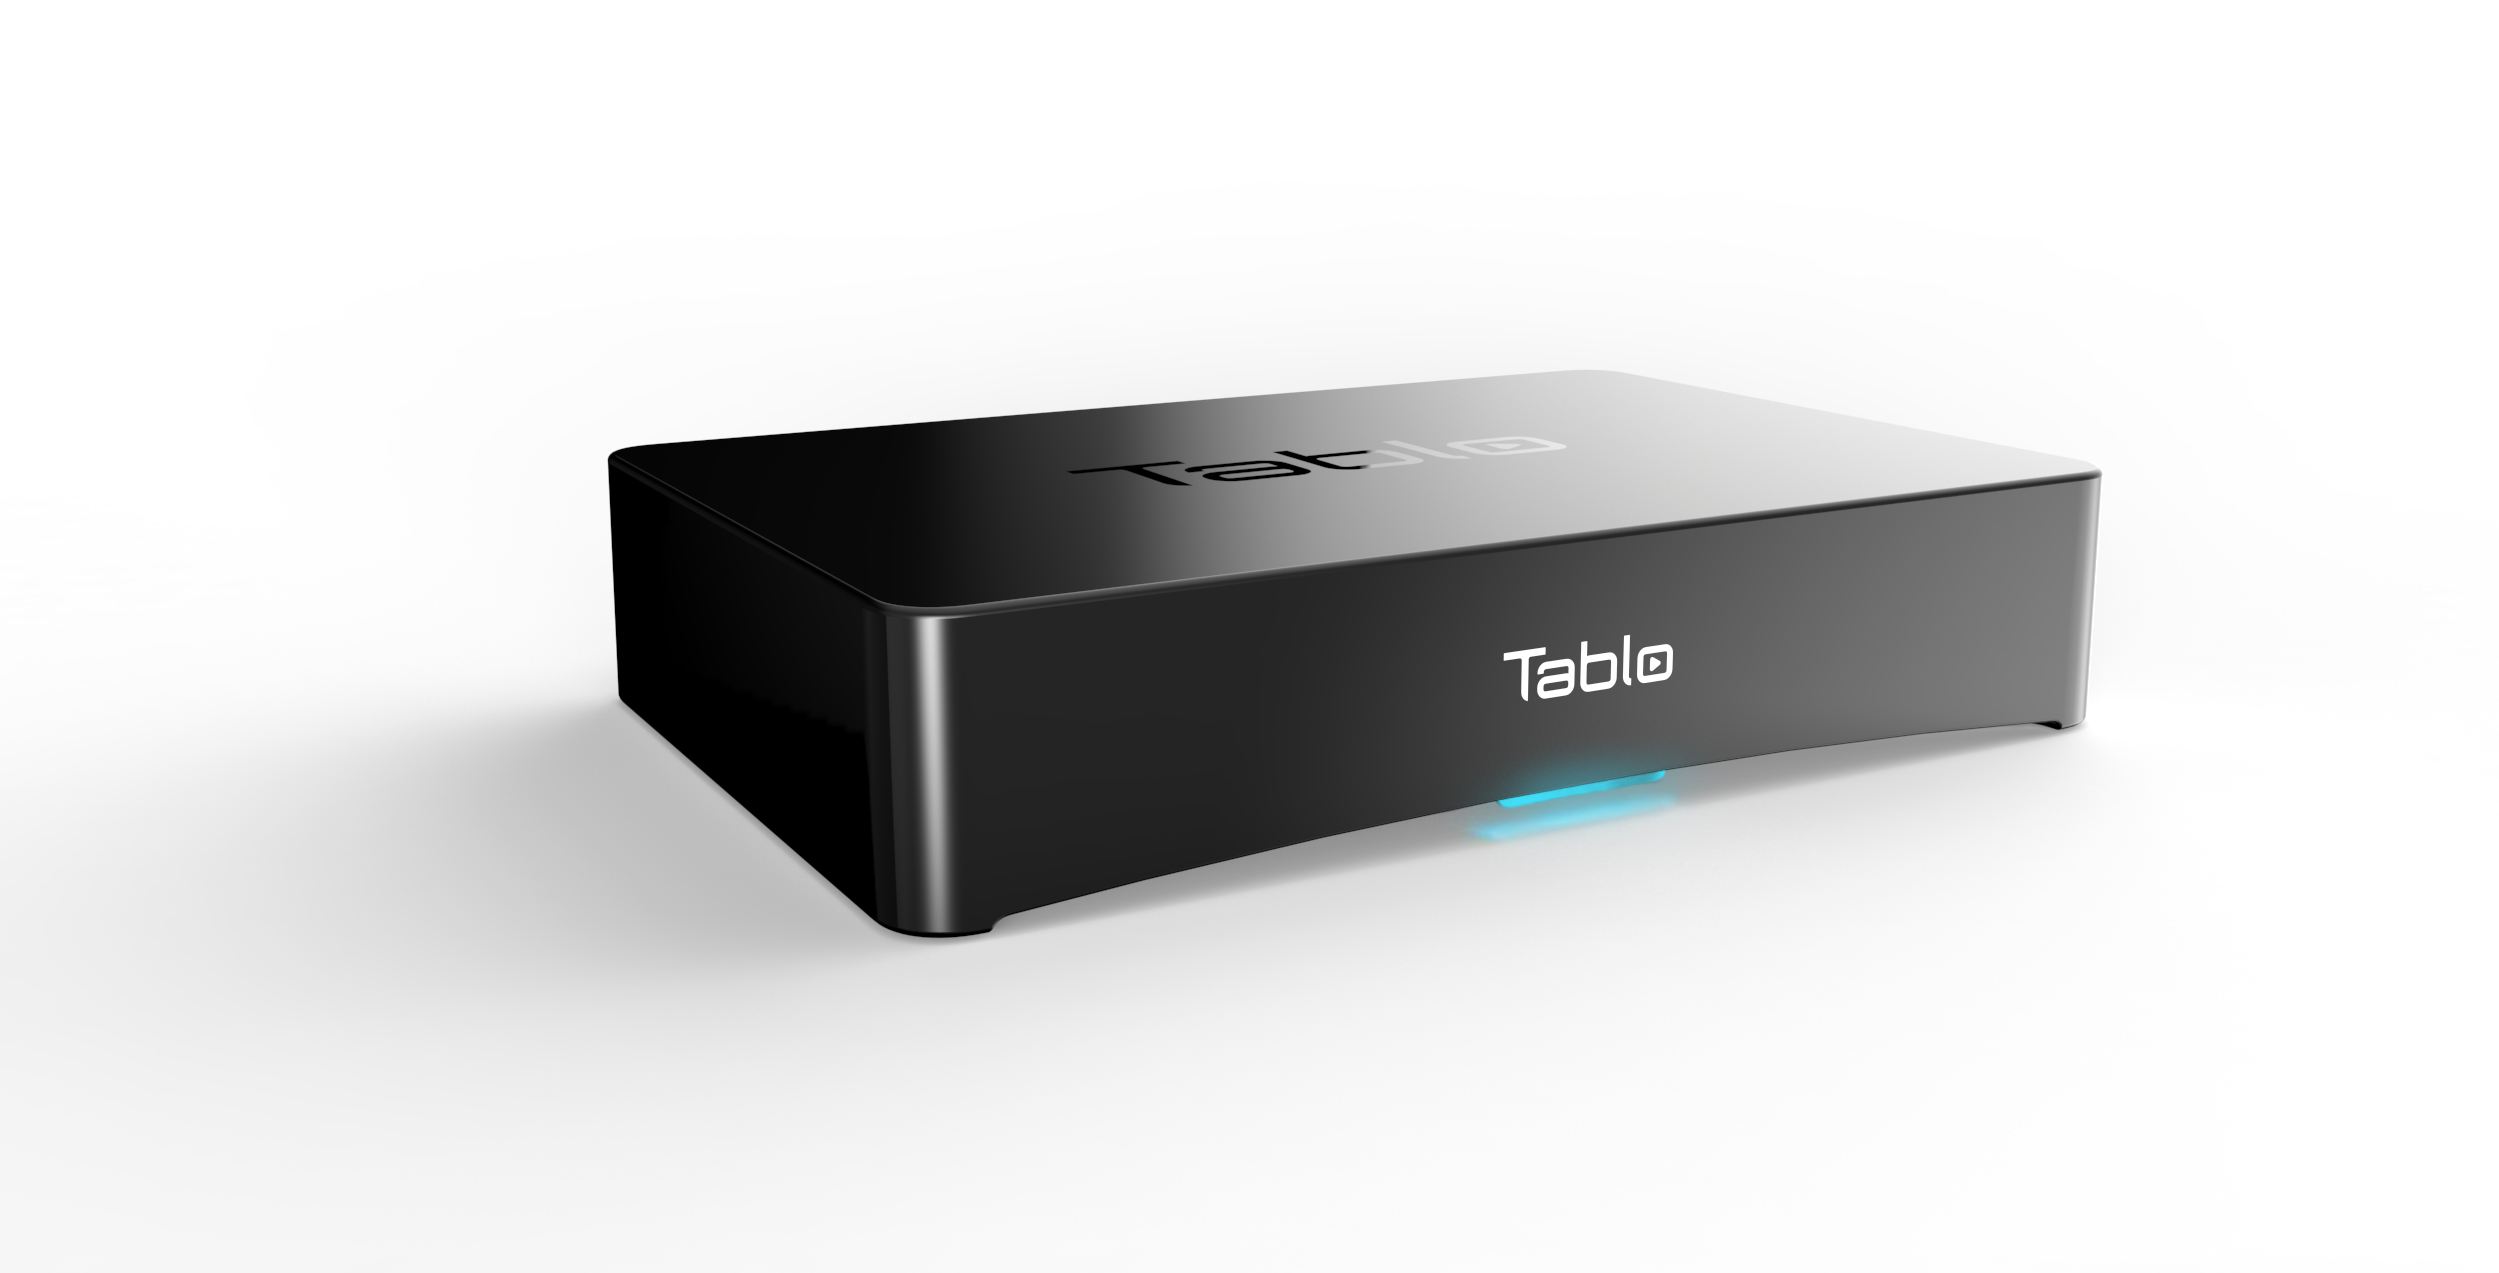 Tablo DVR Product Shot - With Shadow